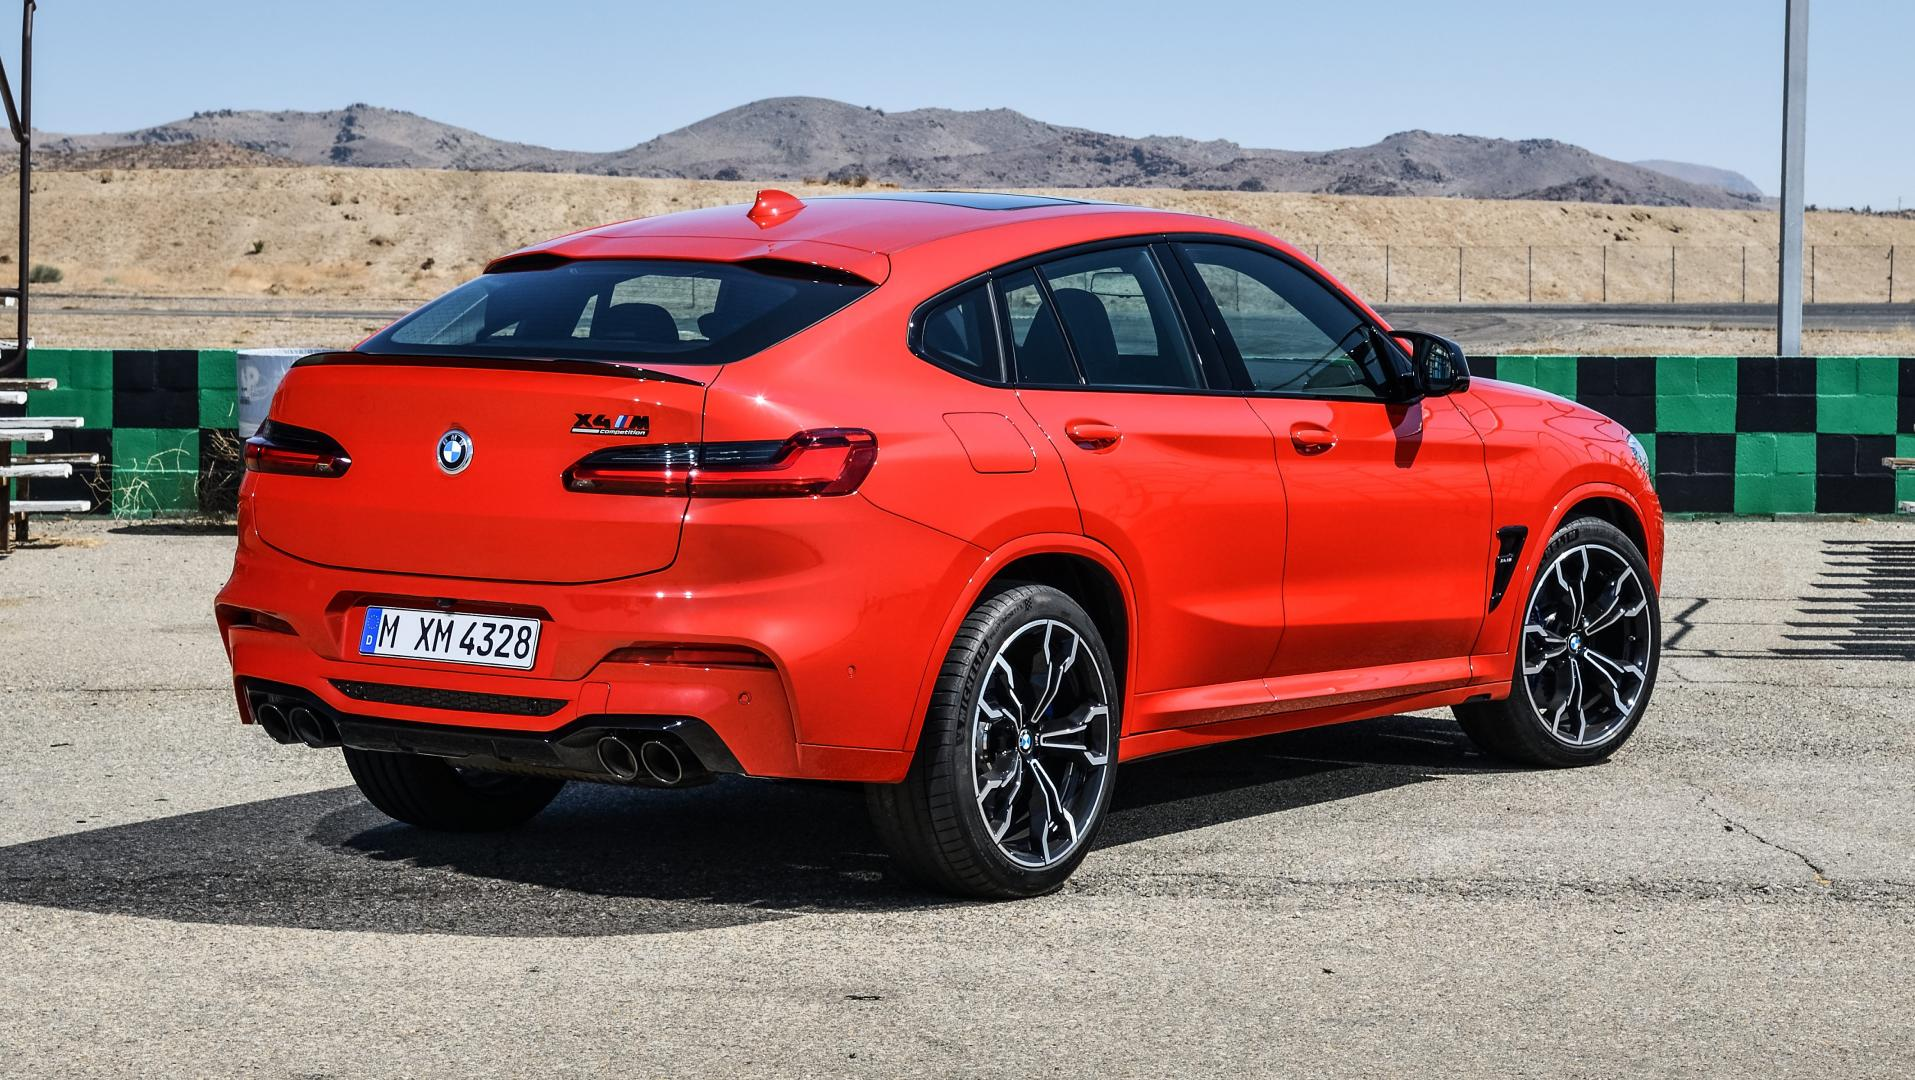 BMW X4 M in de pits